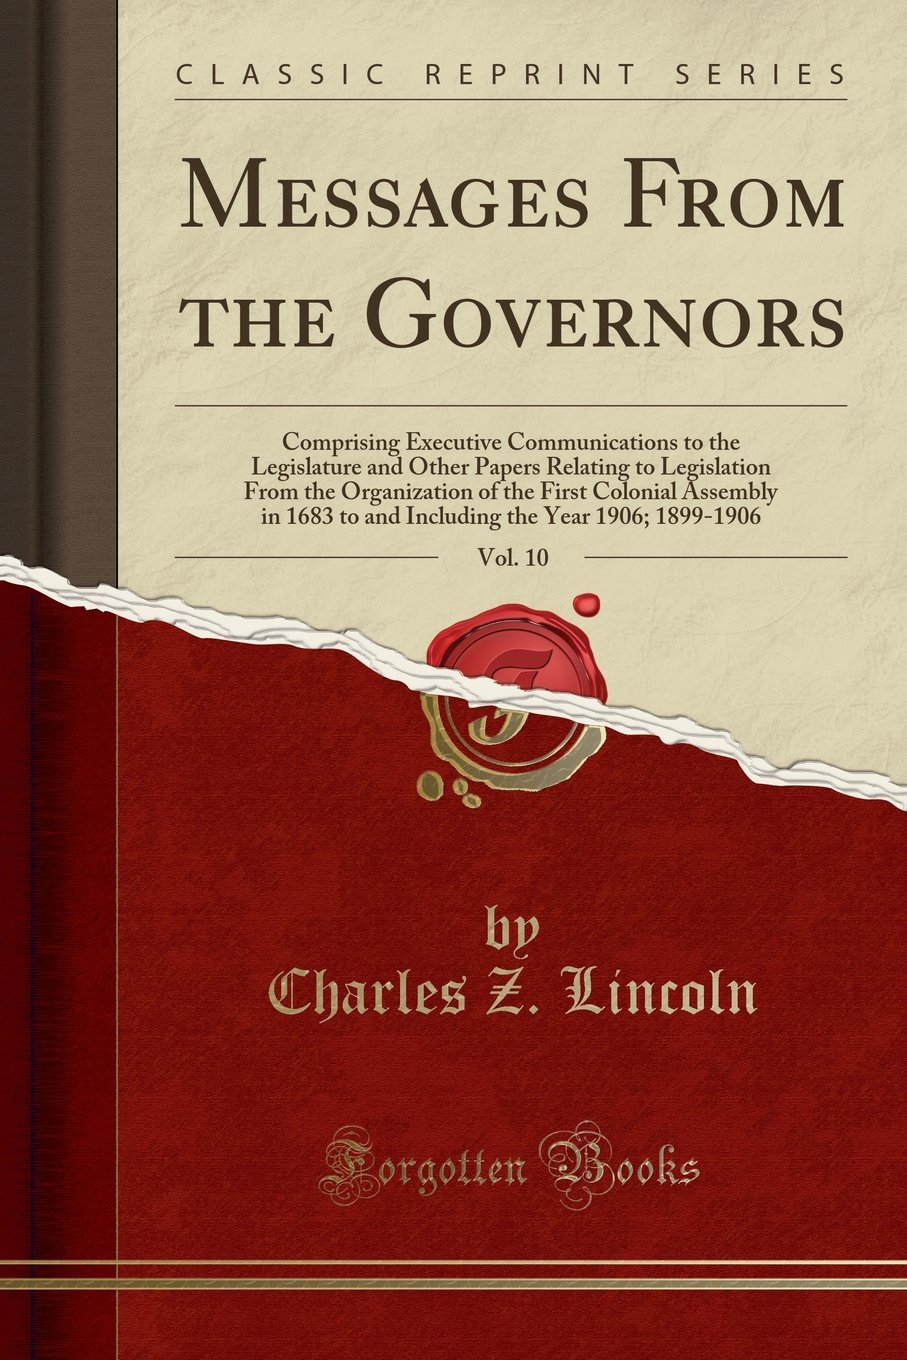 Download Messages From the Governors, Vol. 10: Comprising Executive Communications to the Legislature and Other Papers Relating to Legislation From the ... the Year 1906; 1899-1906 (Classic Reprint) PDF